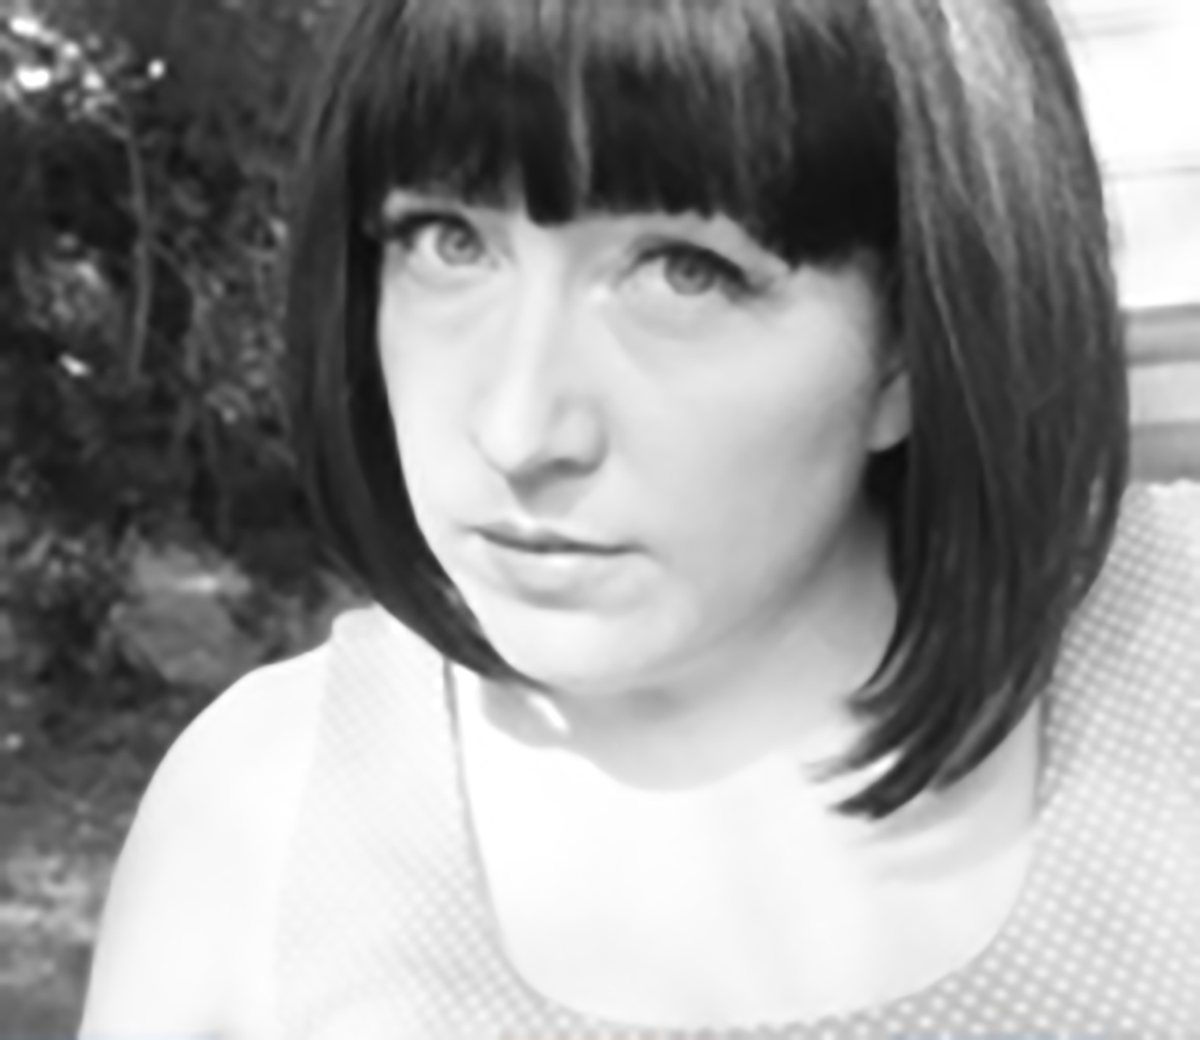 Jillian Weise is a poet, activist, author and amputee who self-identifies as a cyborg, according to an essay she wrote published in The New York Times.